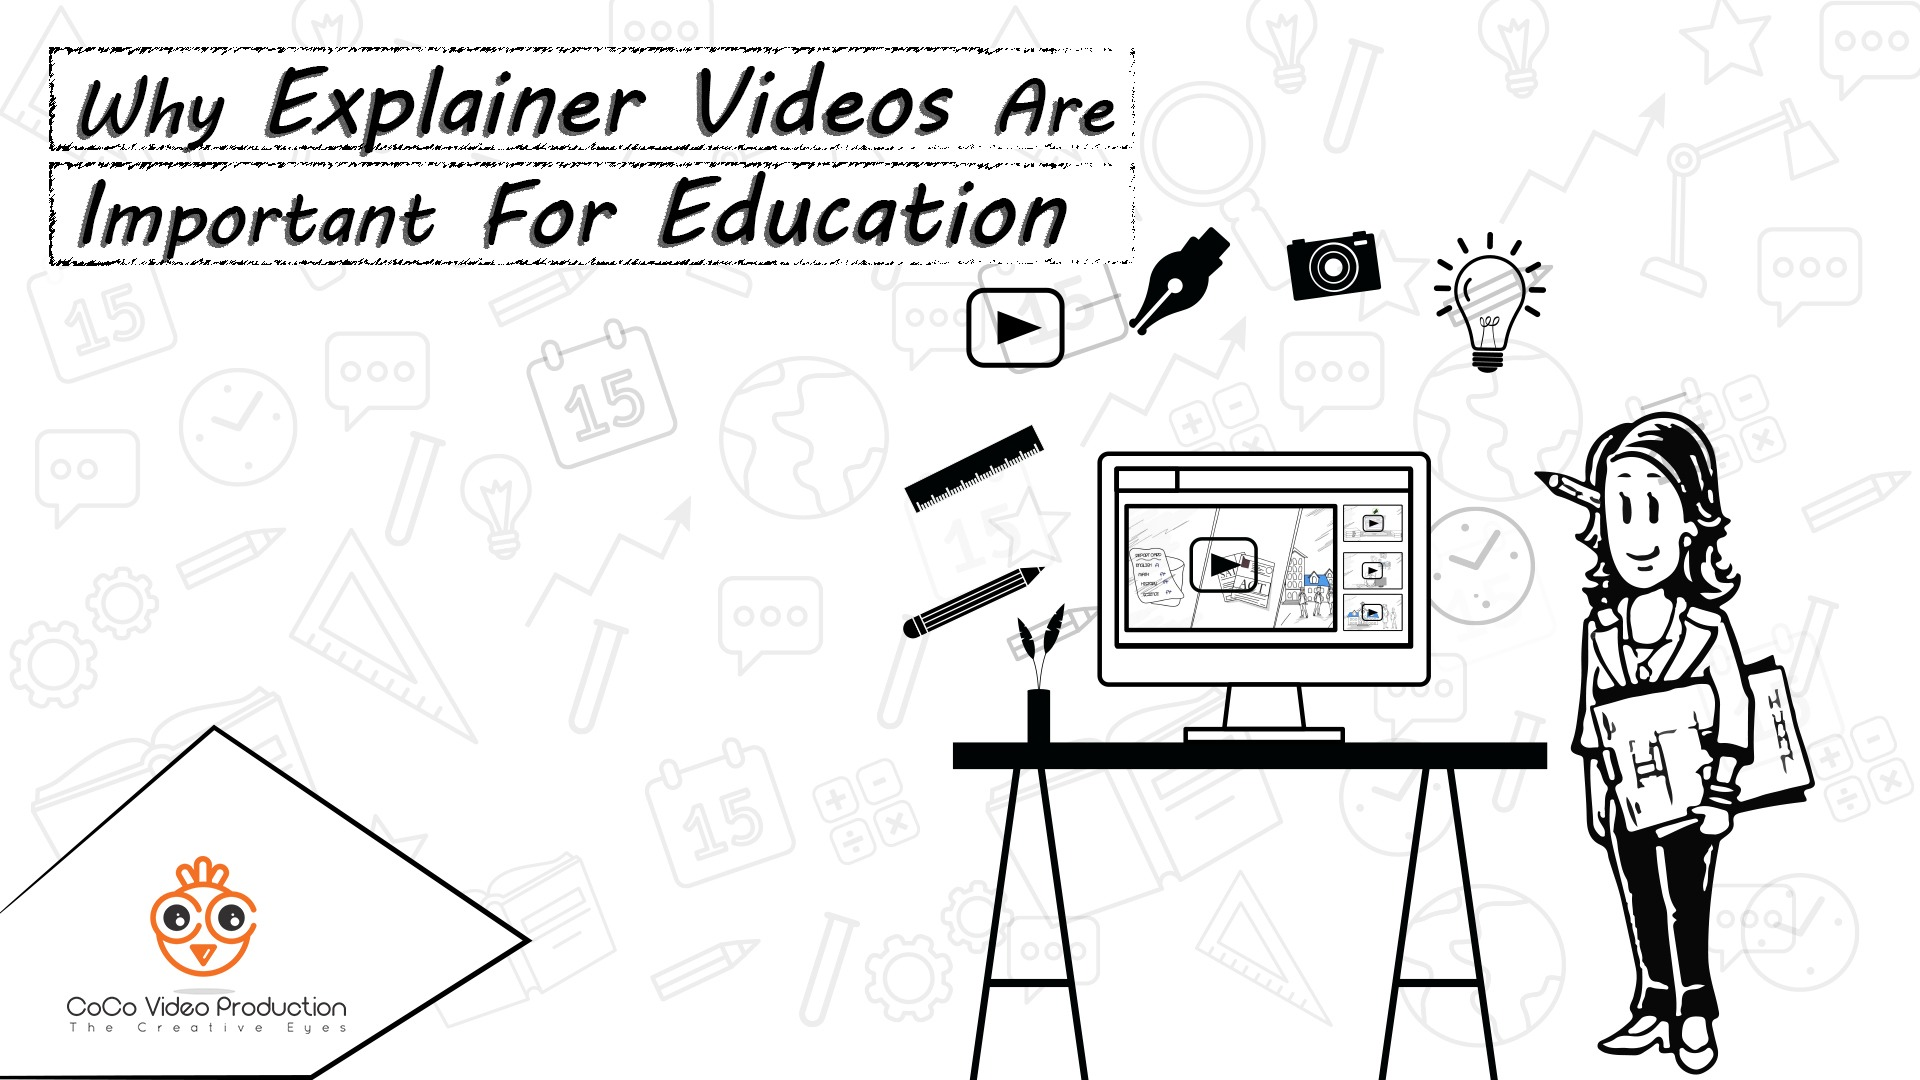 Why Explainer Videos Are Important For Education